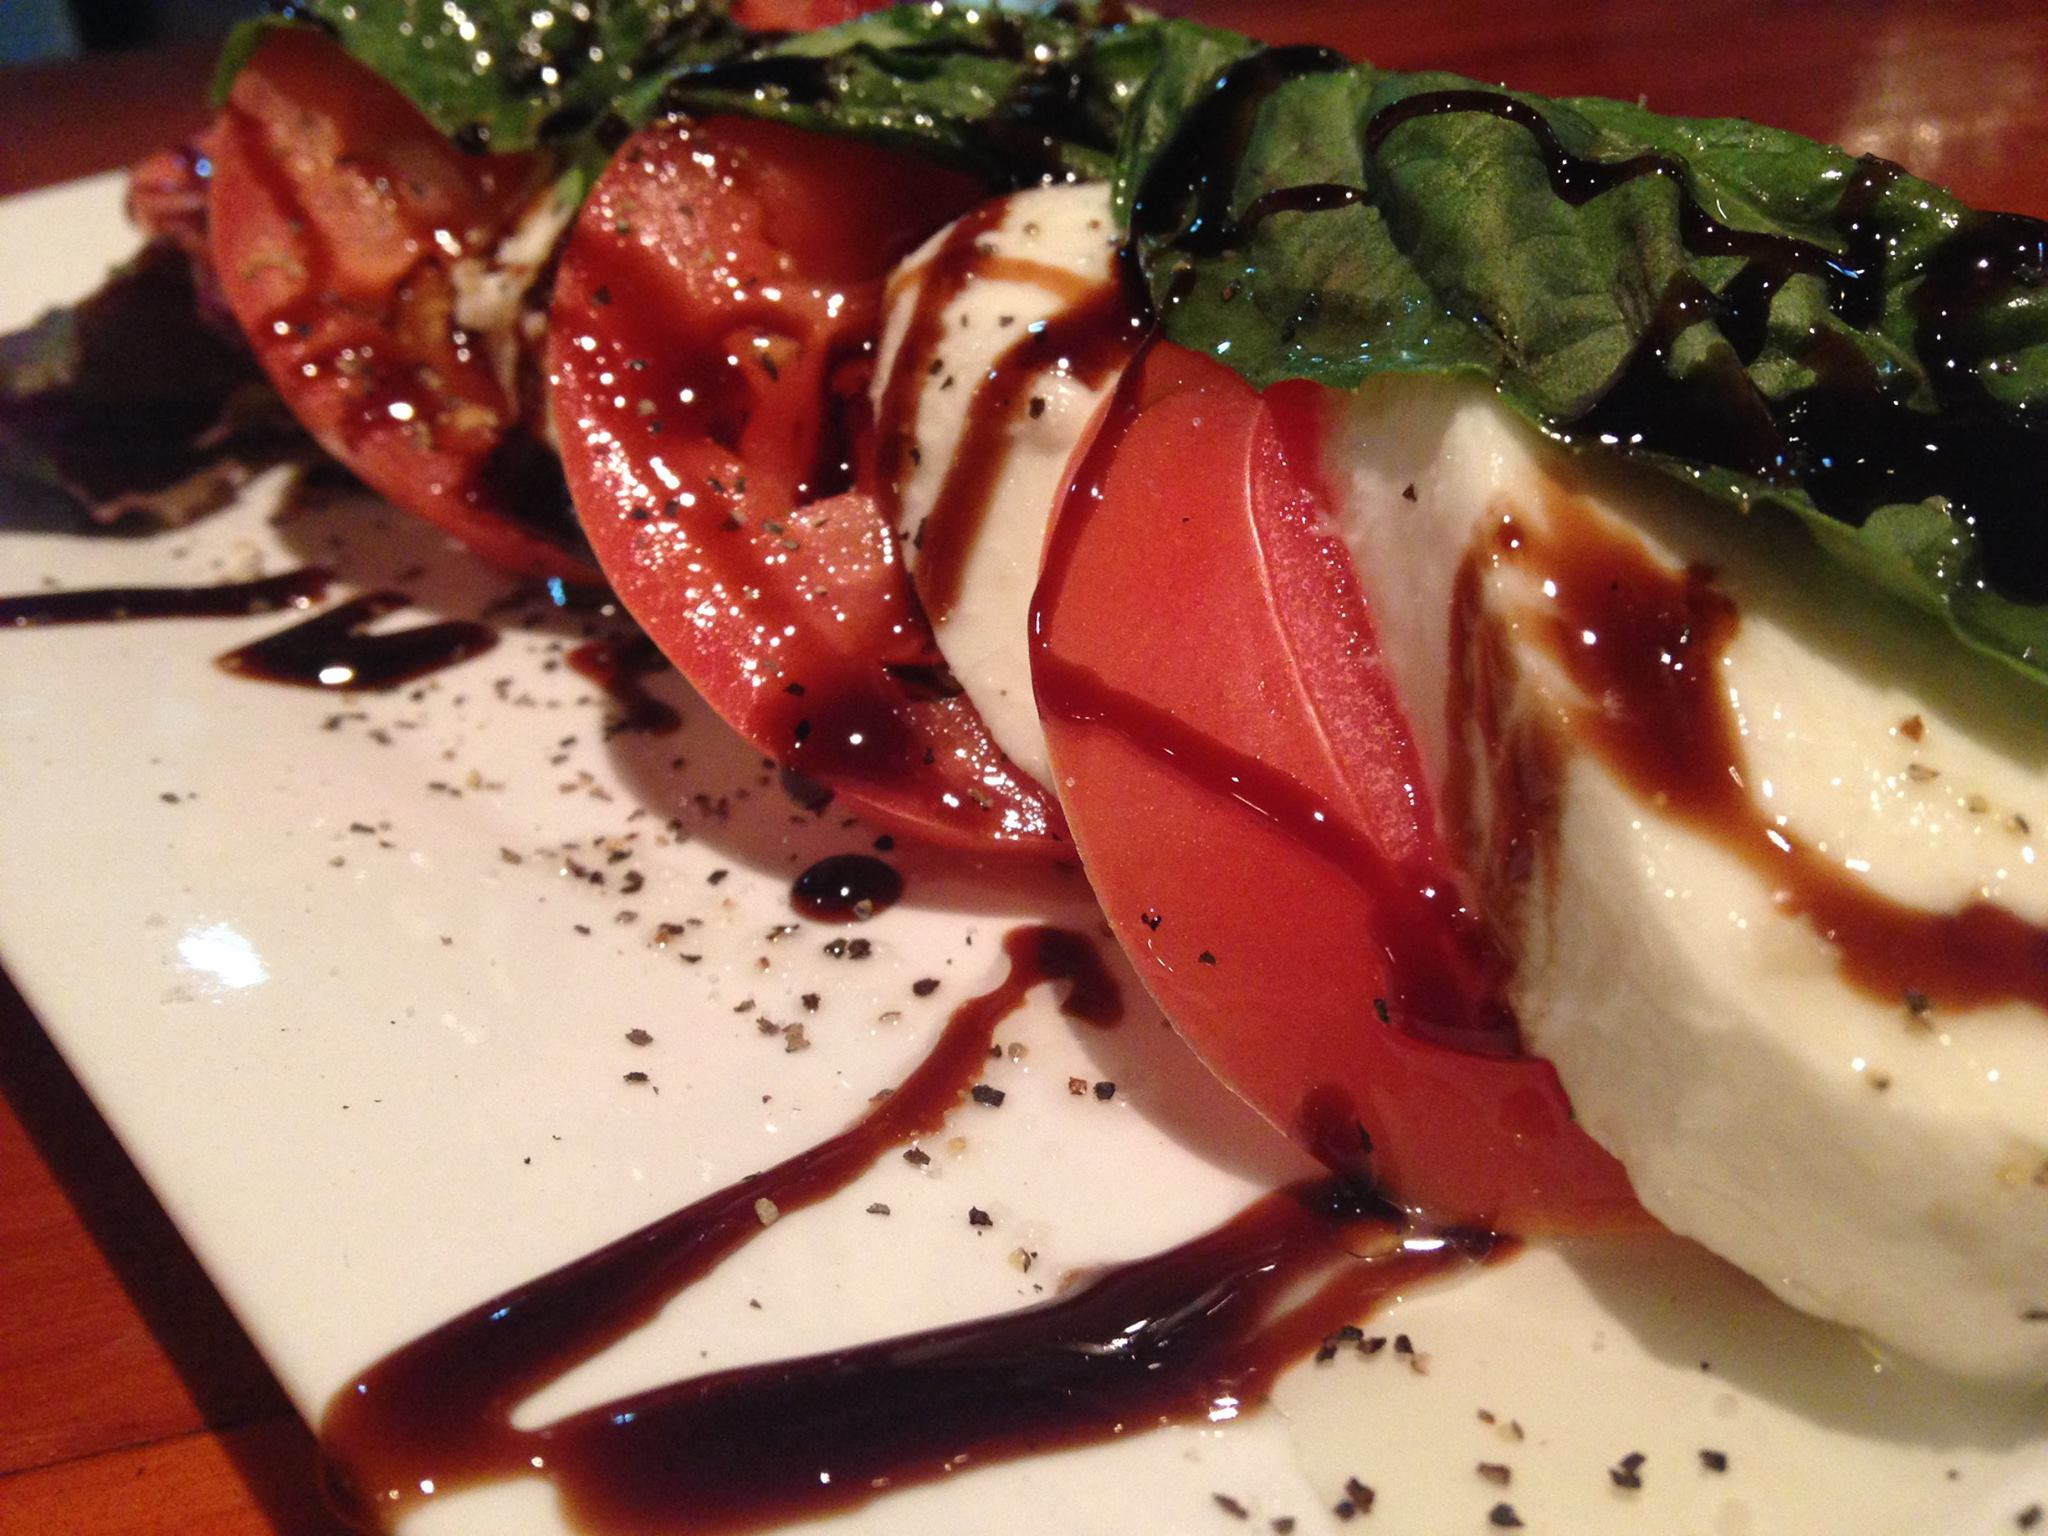 Tomatoes, basil, fresh mozzarella on dish with balsamic drizzle.